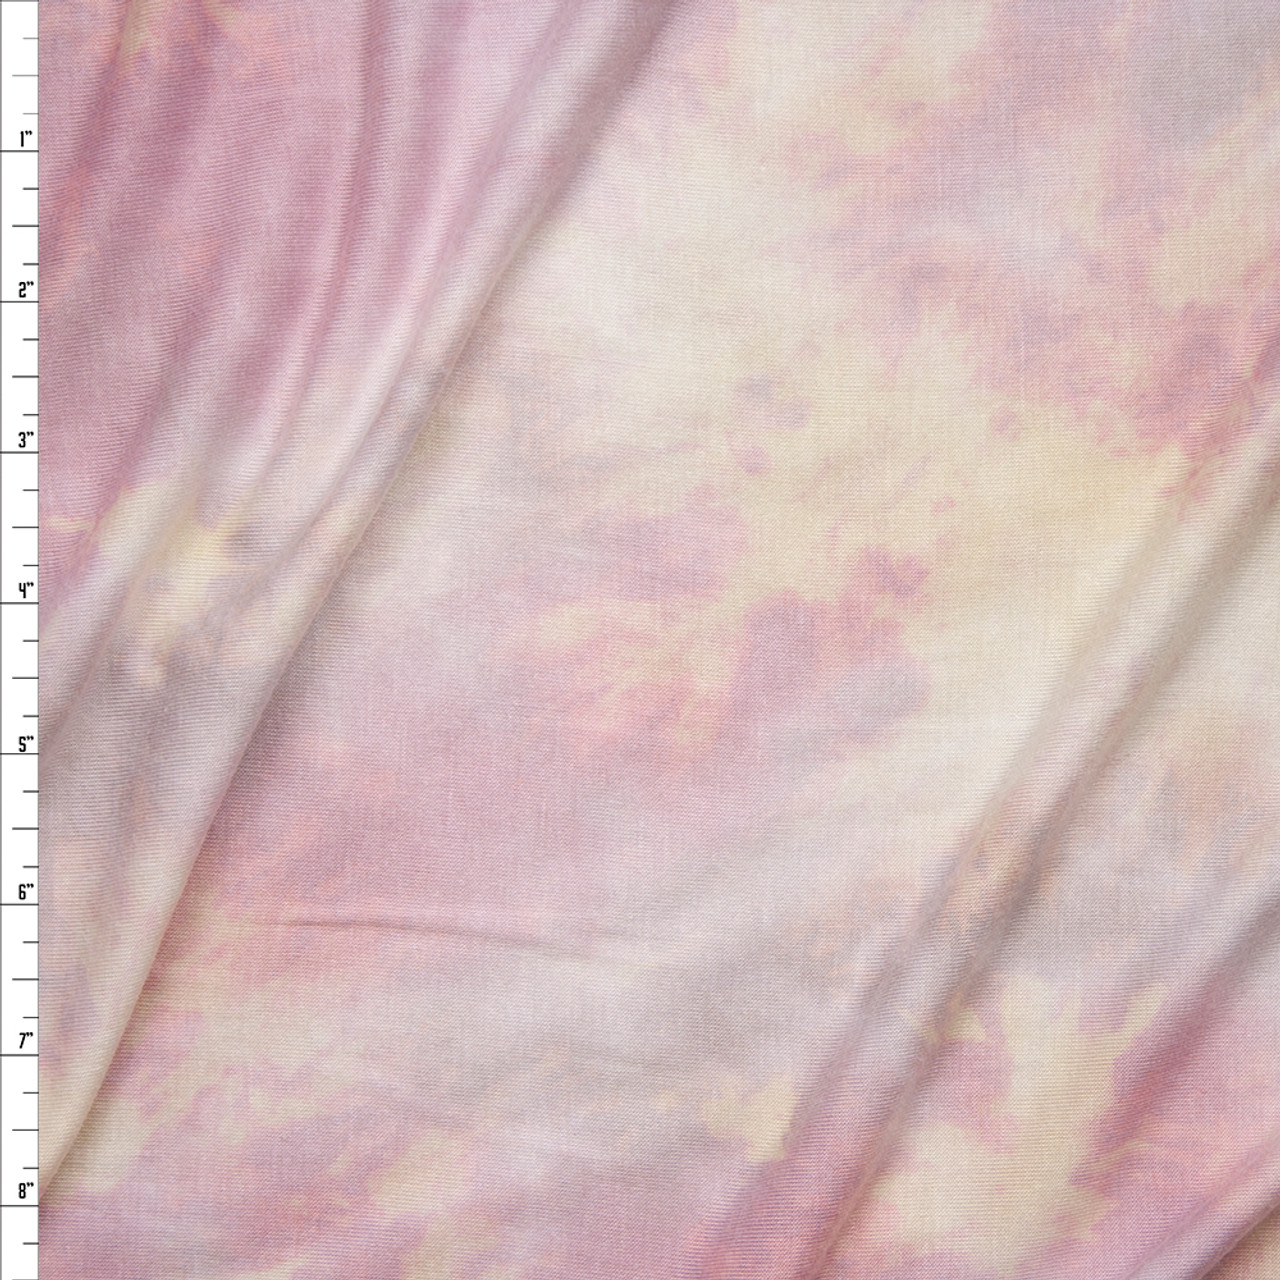 2cfaa8cedf7 Pastel Pink, Yellow, and Lavender Tie Dye Stretch Rayon Jersey Fabric By  The Yard ...